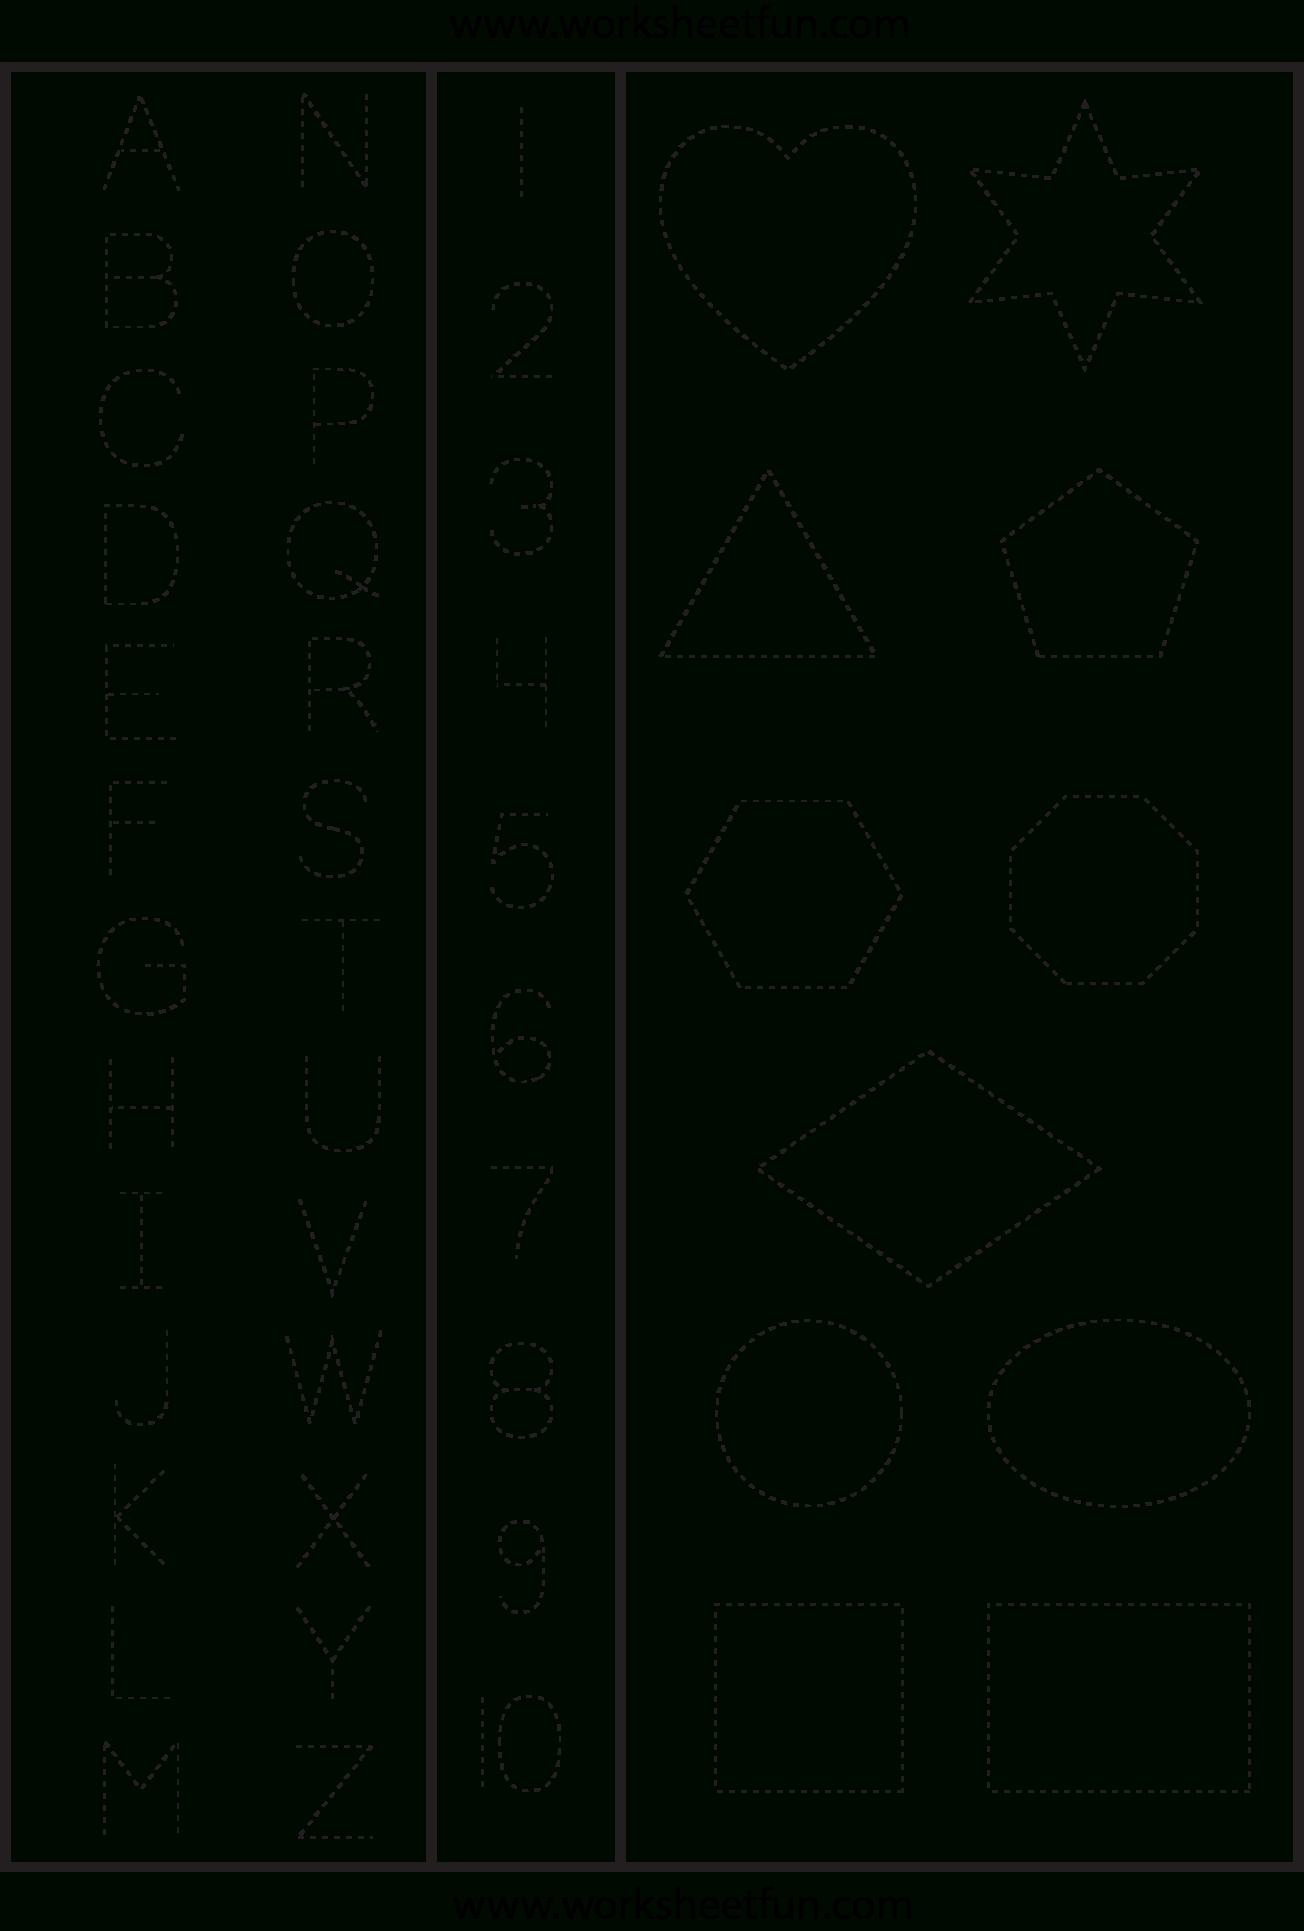 Letters Numbers & Shapes Tracing Worksheet | Printable Worksheets - Free Printable Tracing Letters And Numbers Worksheets